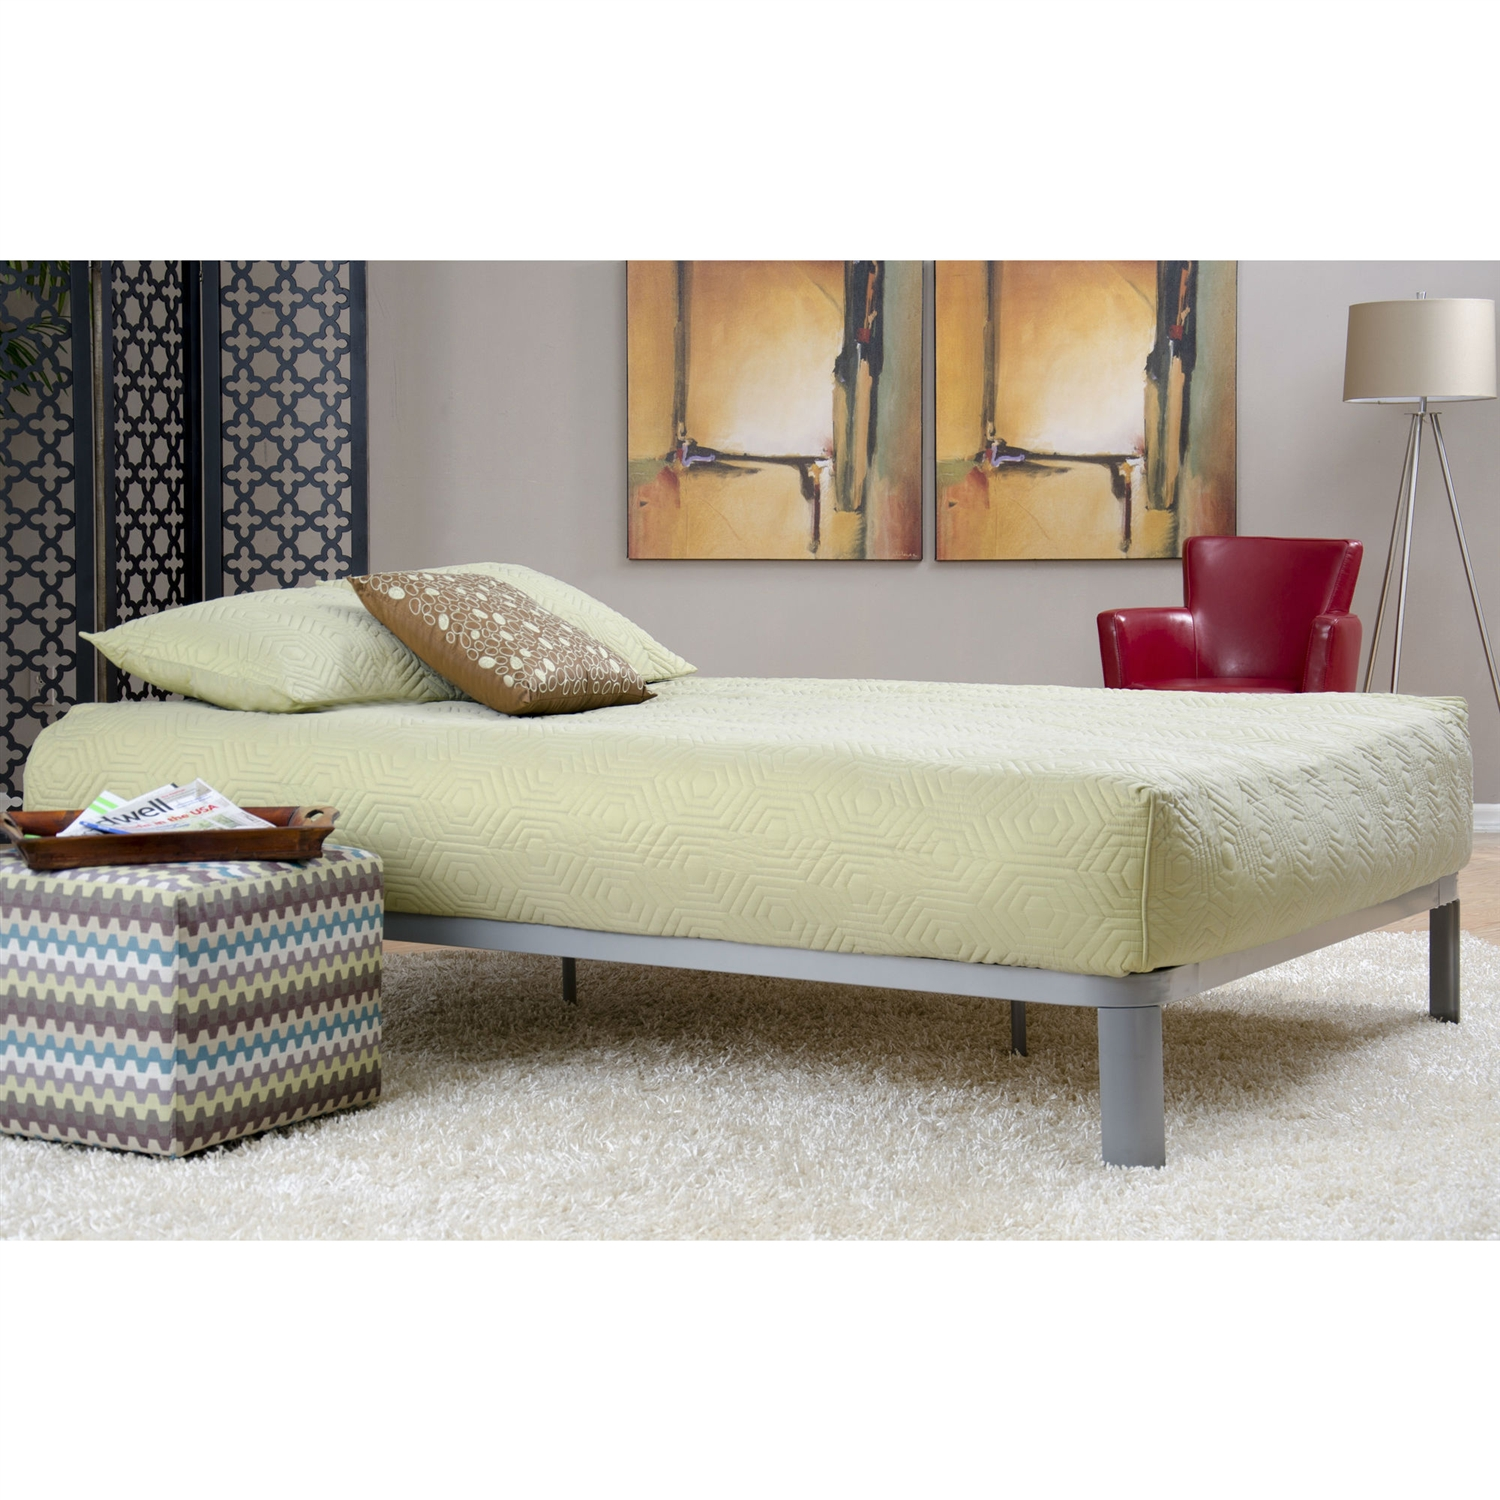 retail price 29900 - Wood Slat Bed Frame Queen